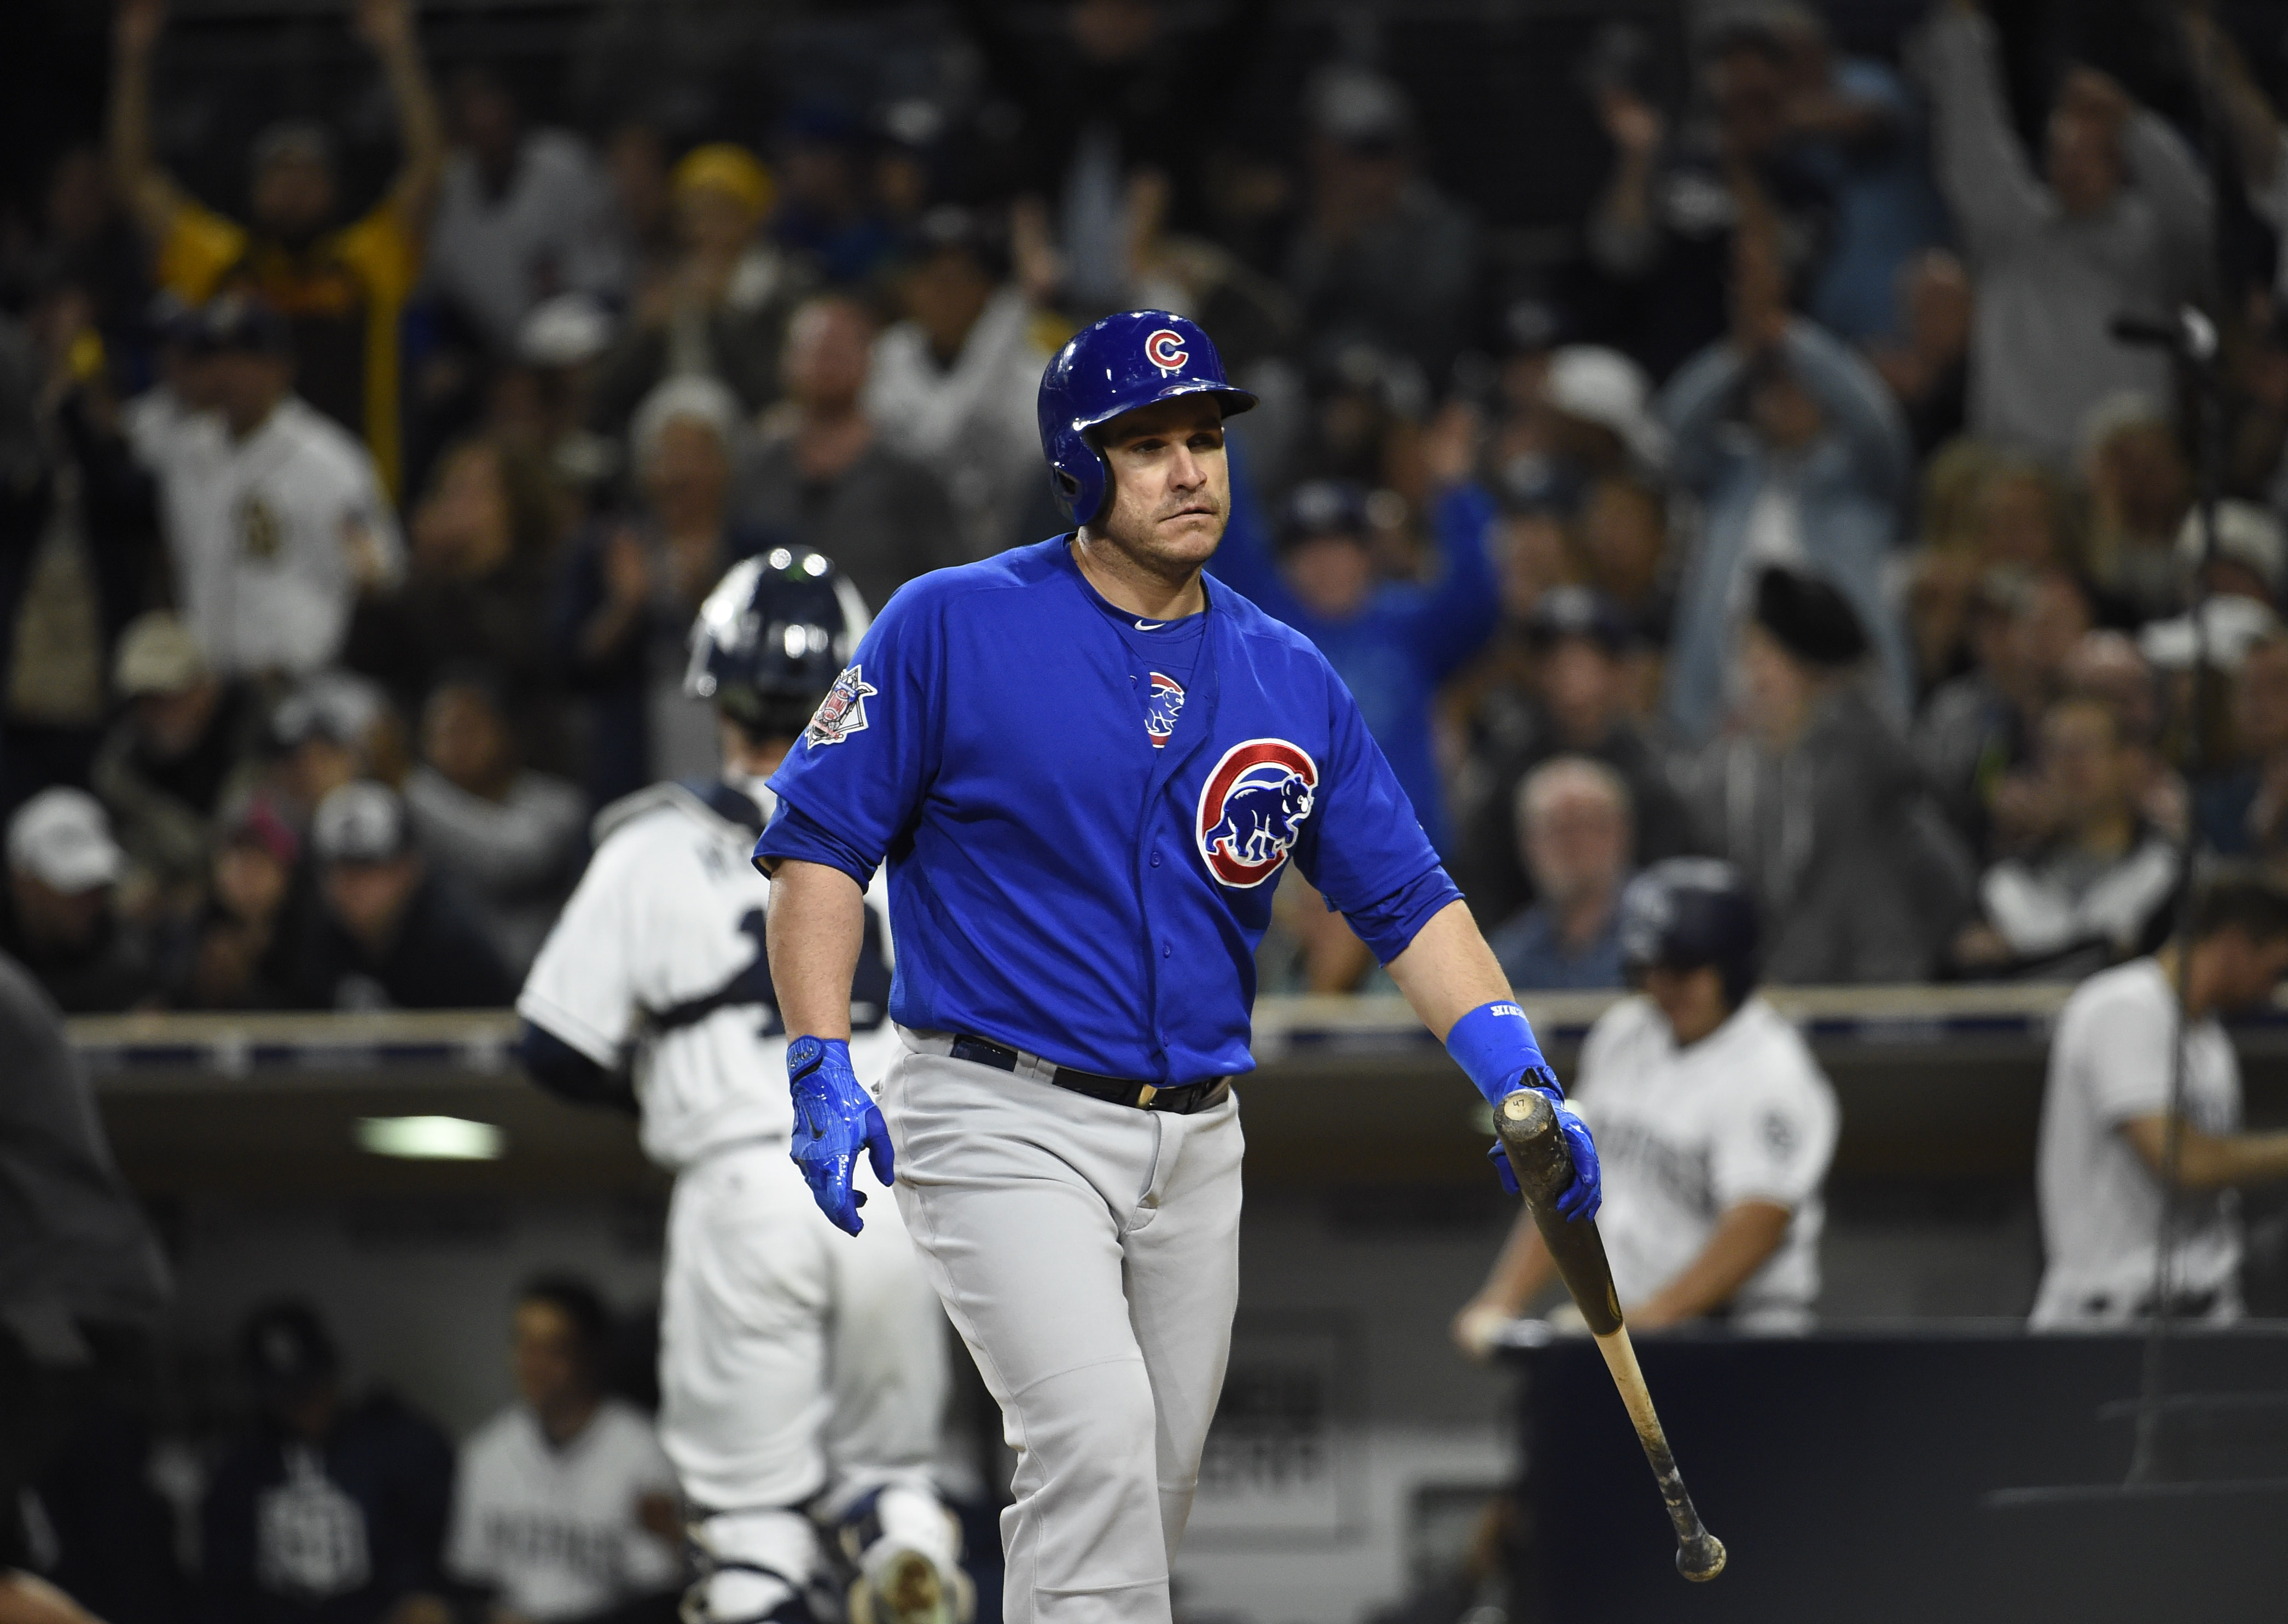 Chicago Cubs: When star players get more leeway than others